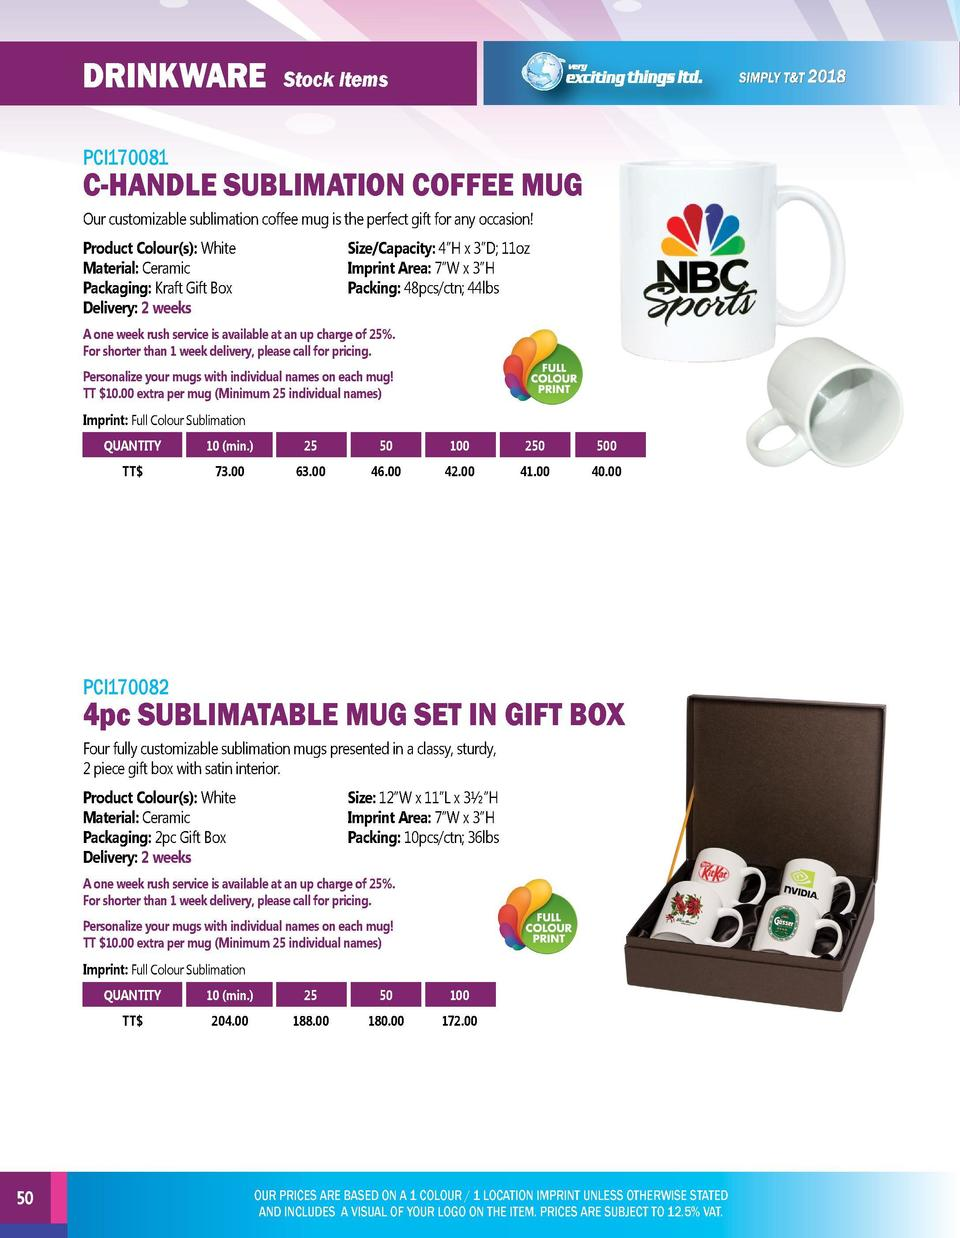 DRINKWARE  DRINKWARE  Stock Items  Stock Items  PCI170081  PCI170083  Our customizable sublimation coffee mug is the perfe...